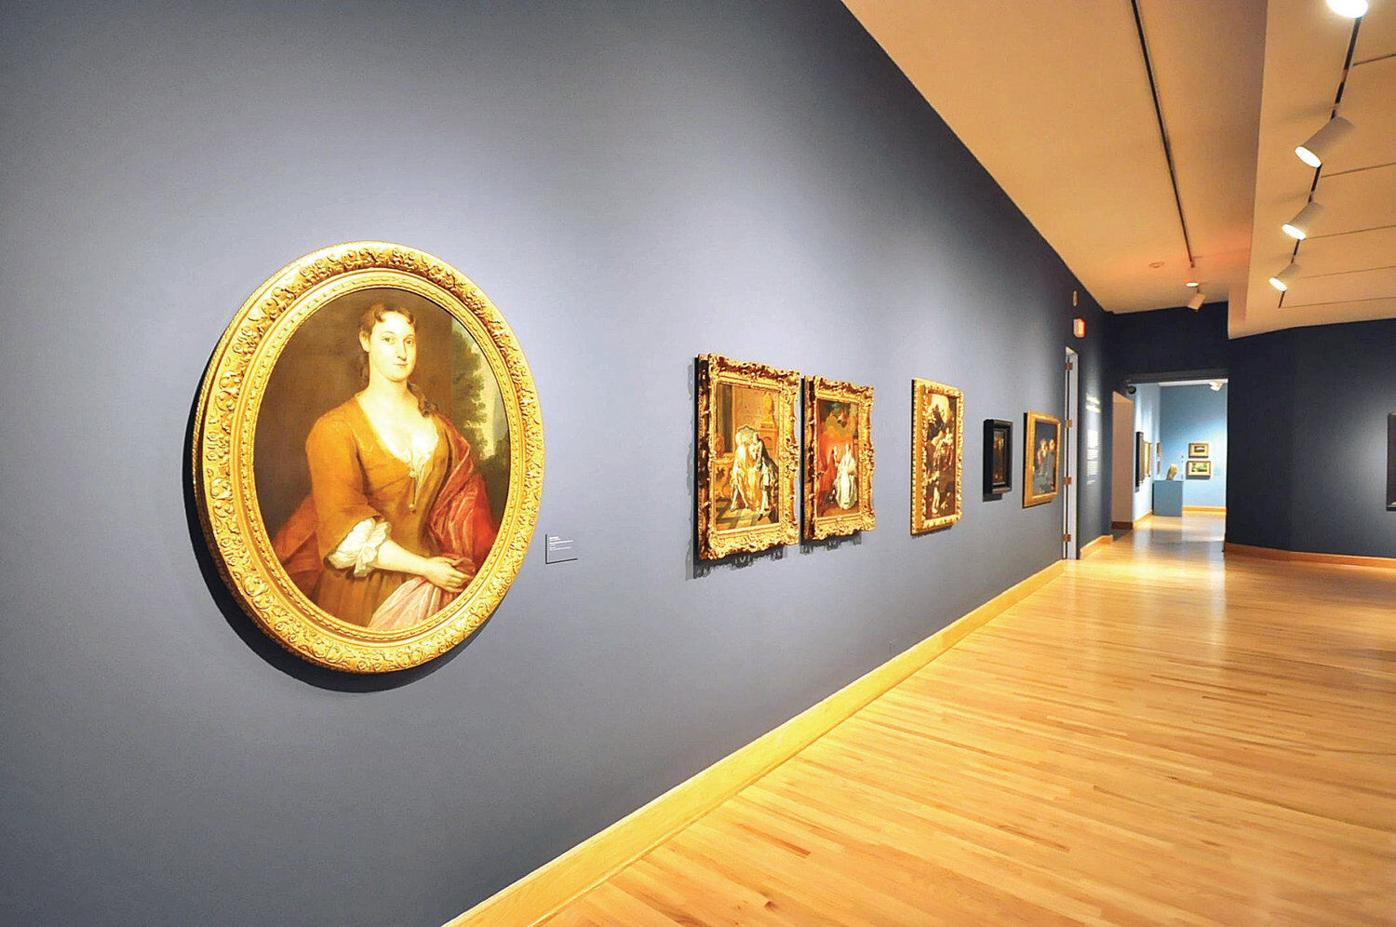 How large is the diversity gap in art museums' collections?